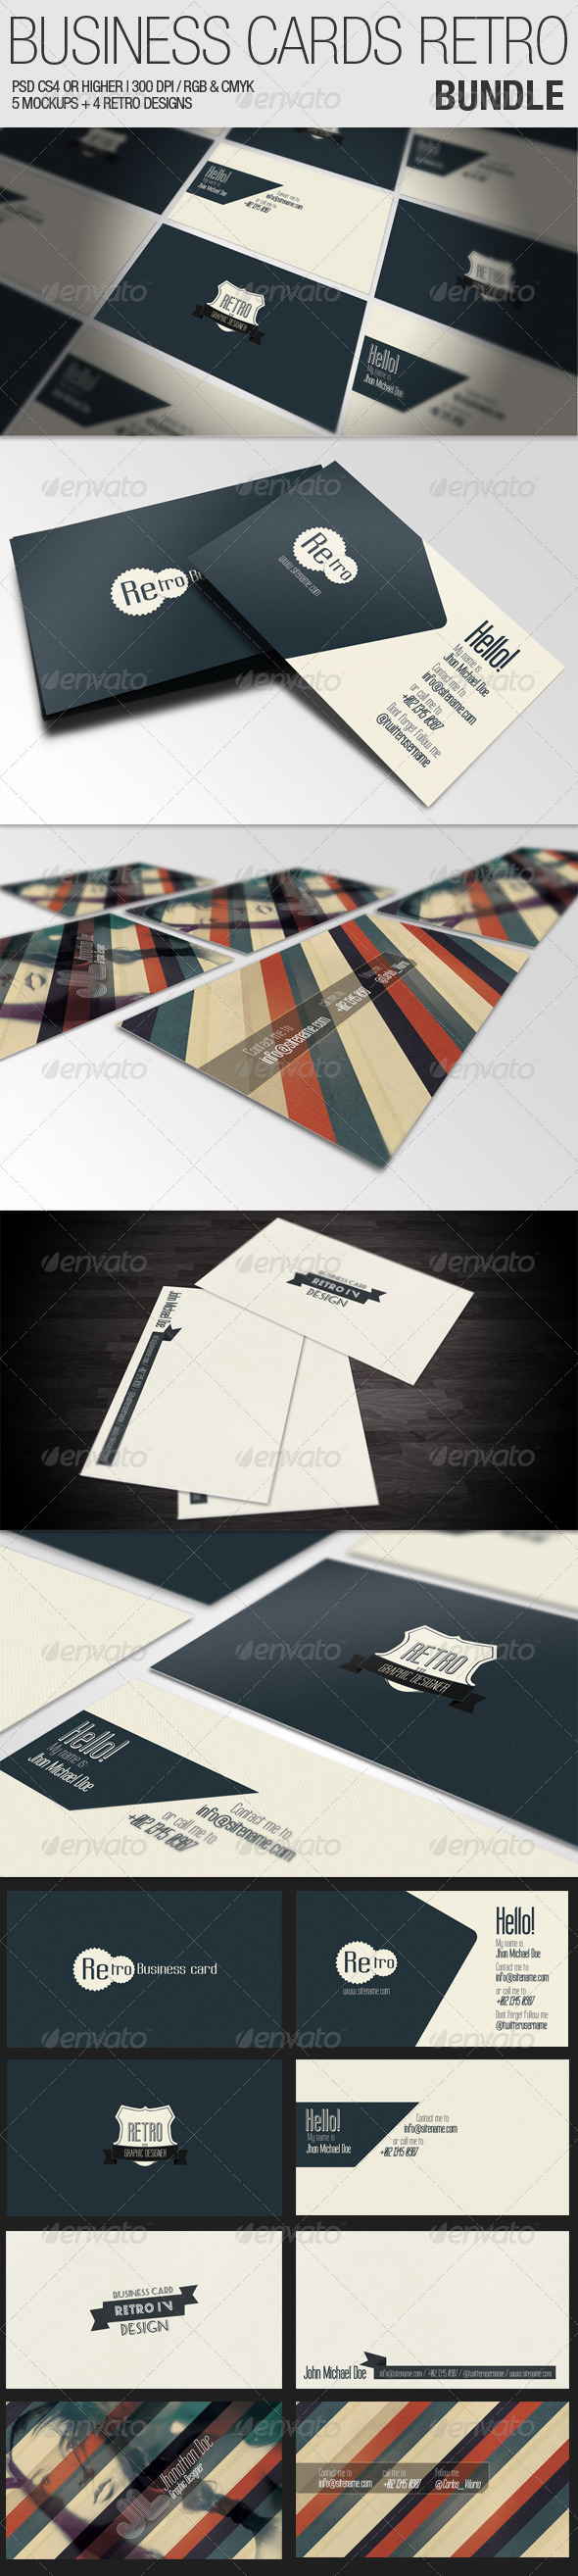 Graphic River Business Cards Retro Bundle Graphics -  Product Mock-Ups 946370